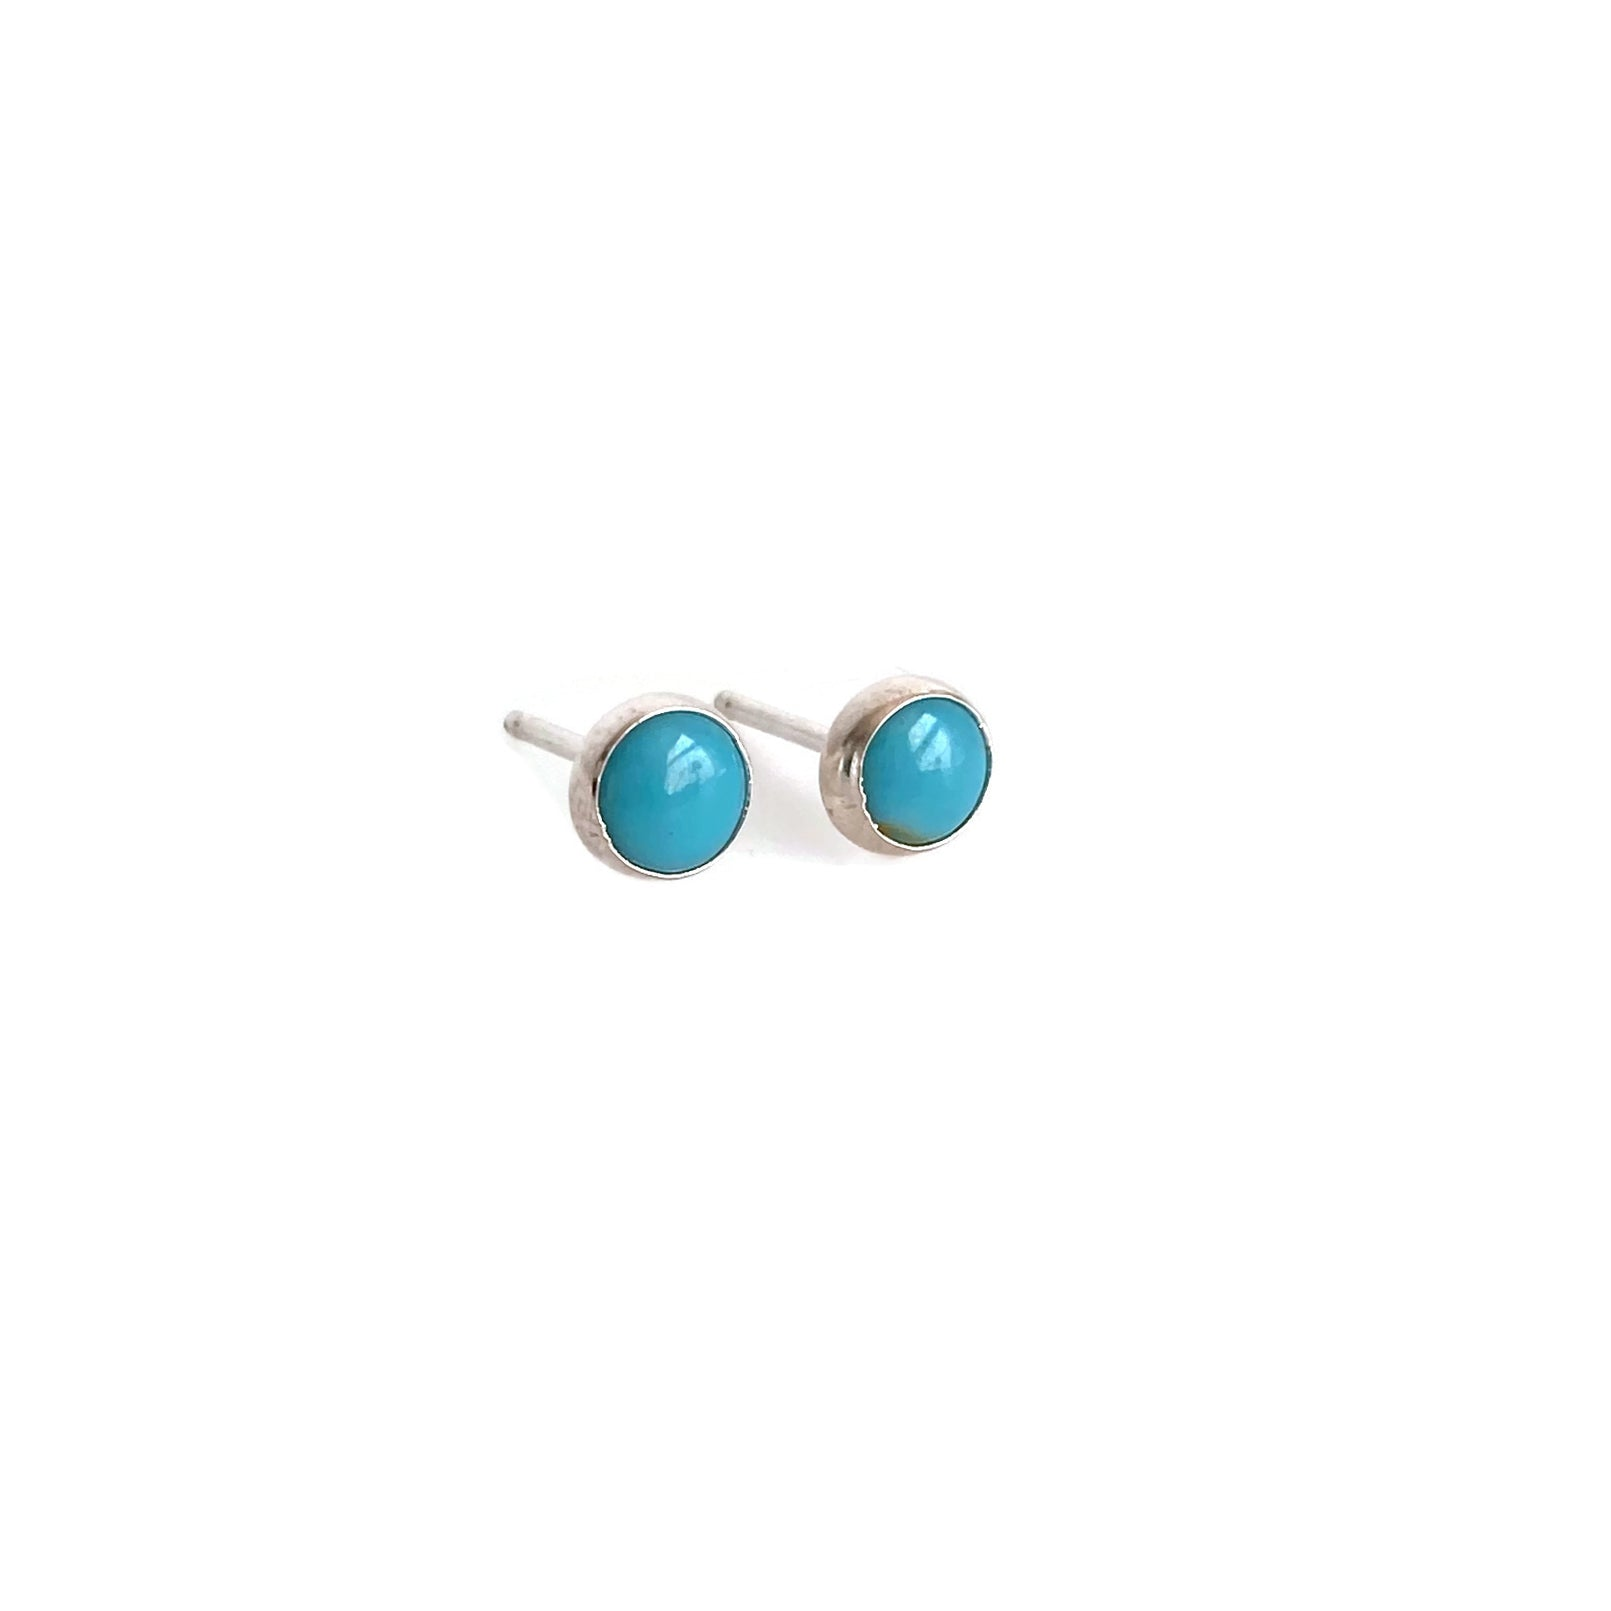 sterling silver turquoise stud earrings are December birthstone earrings.